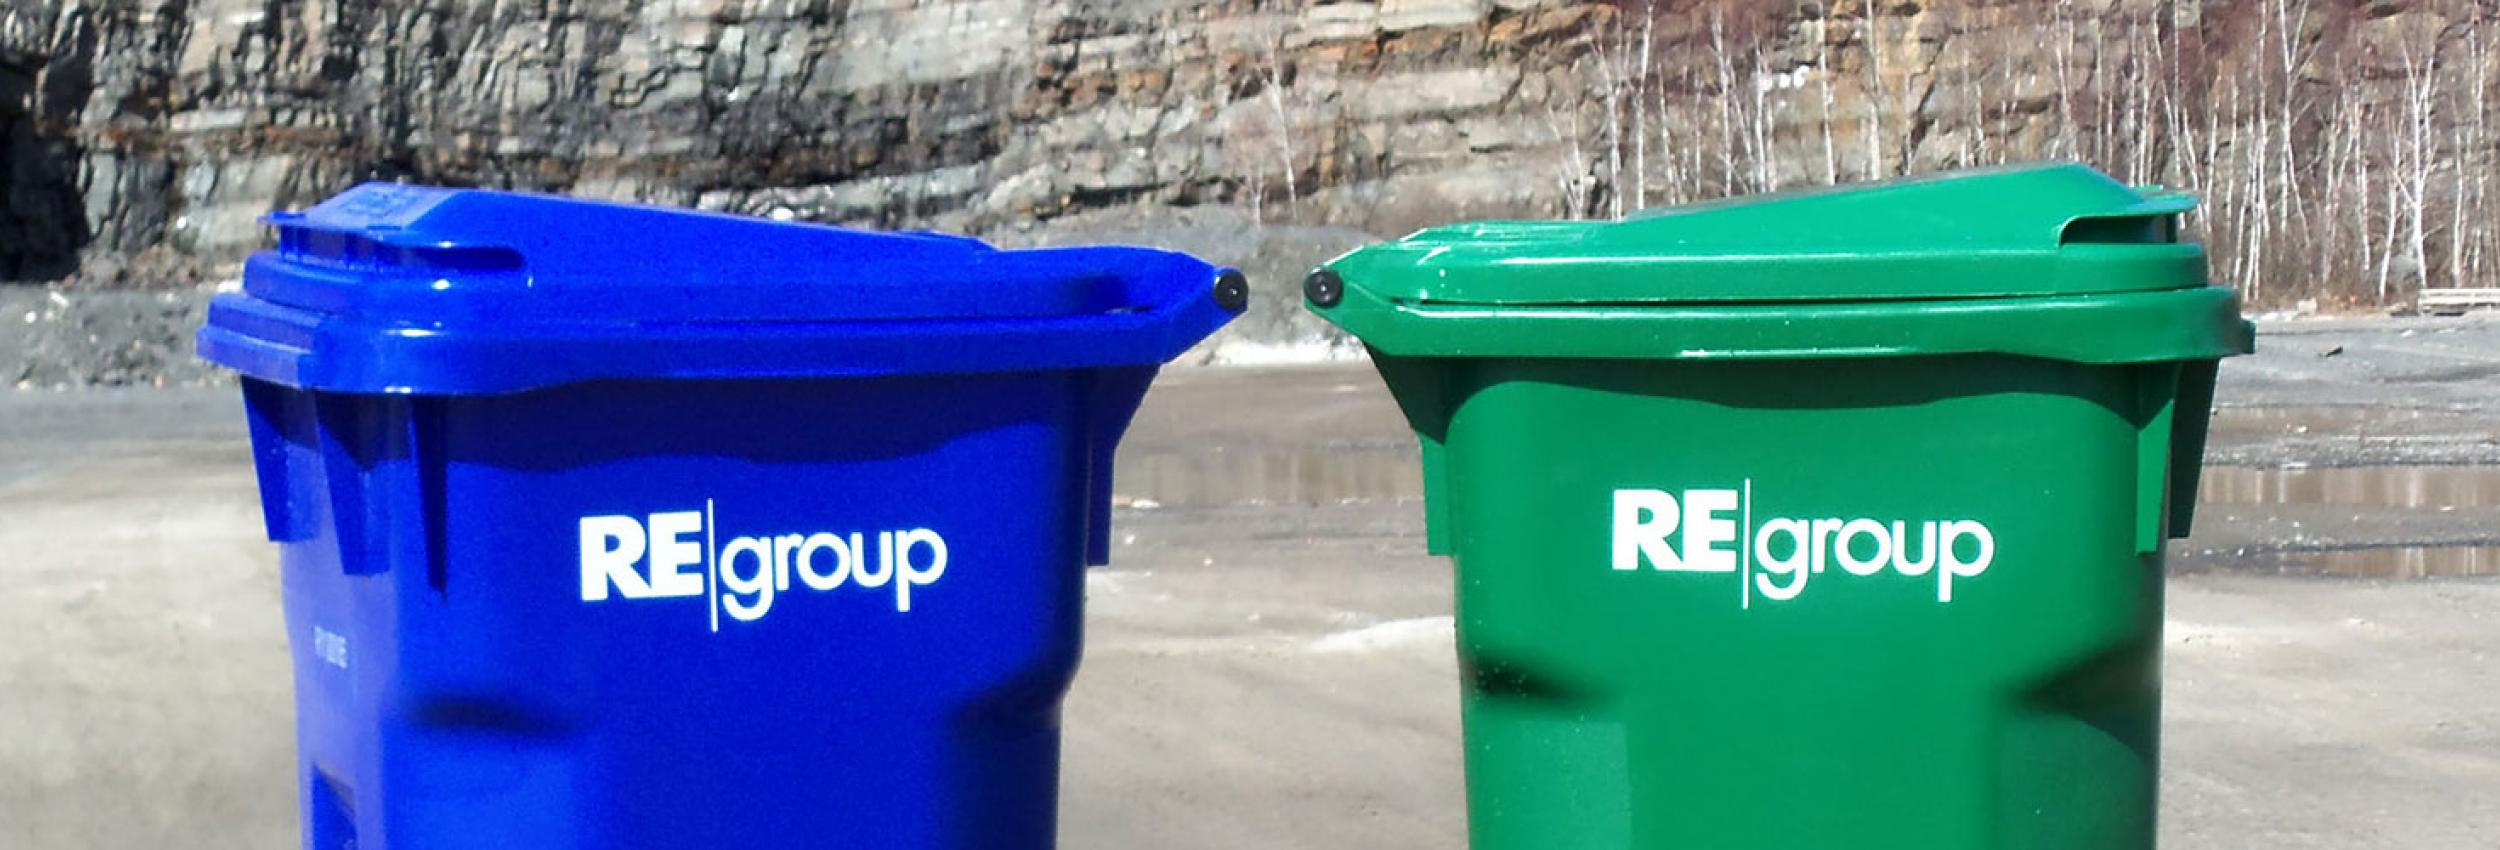 Blue and Green toter bins